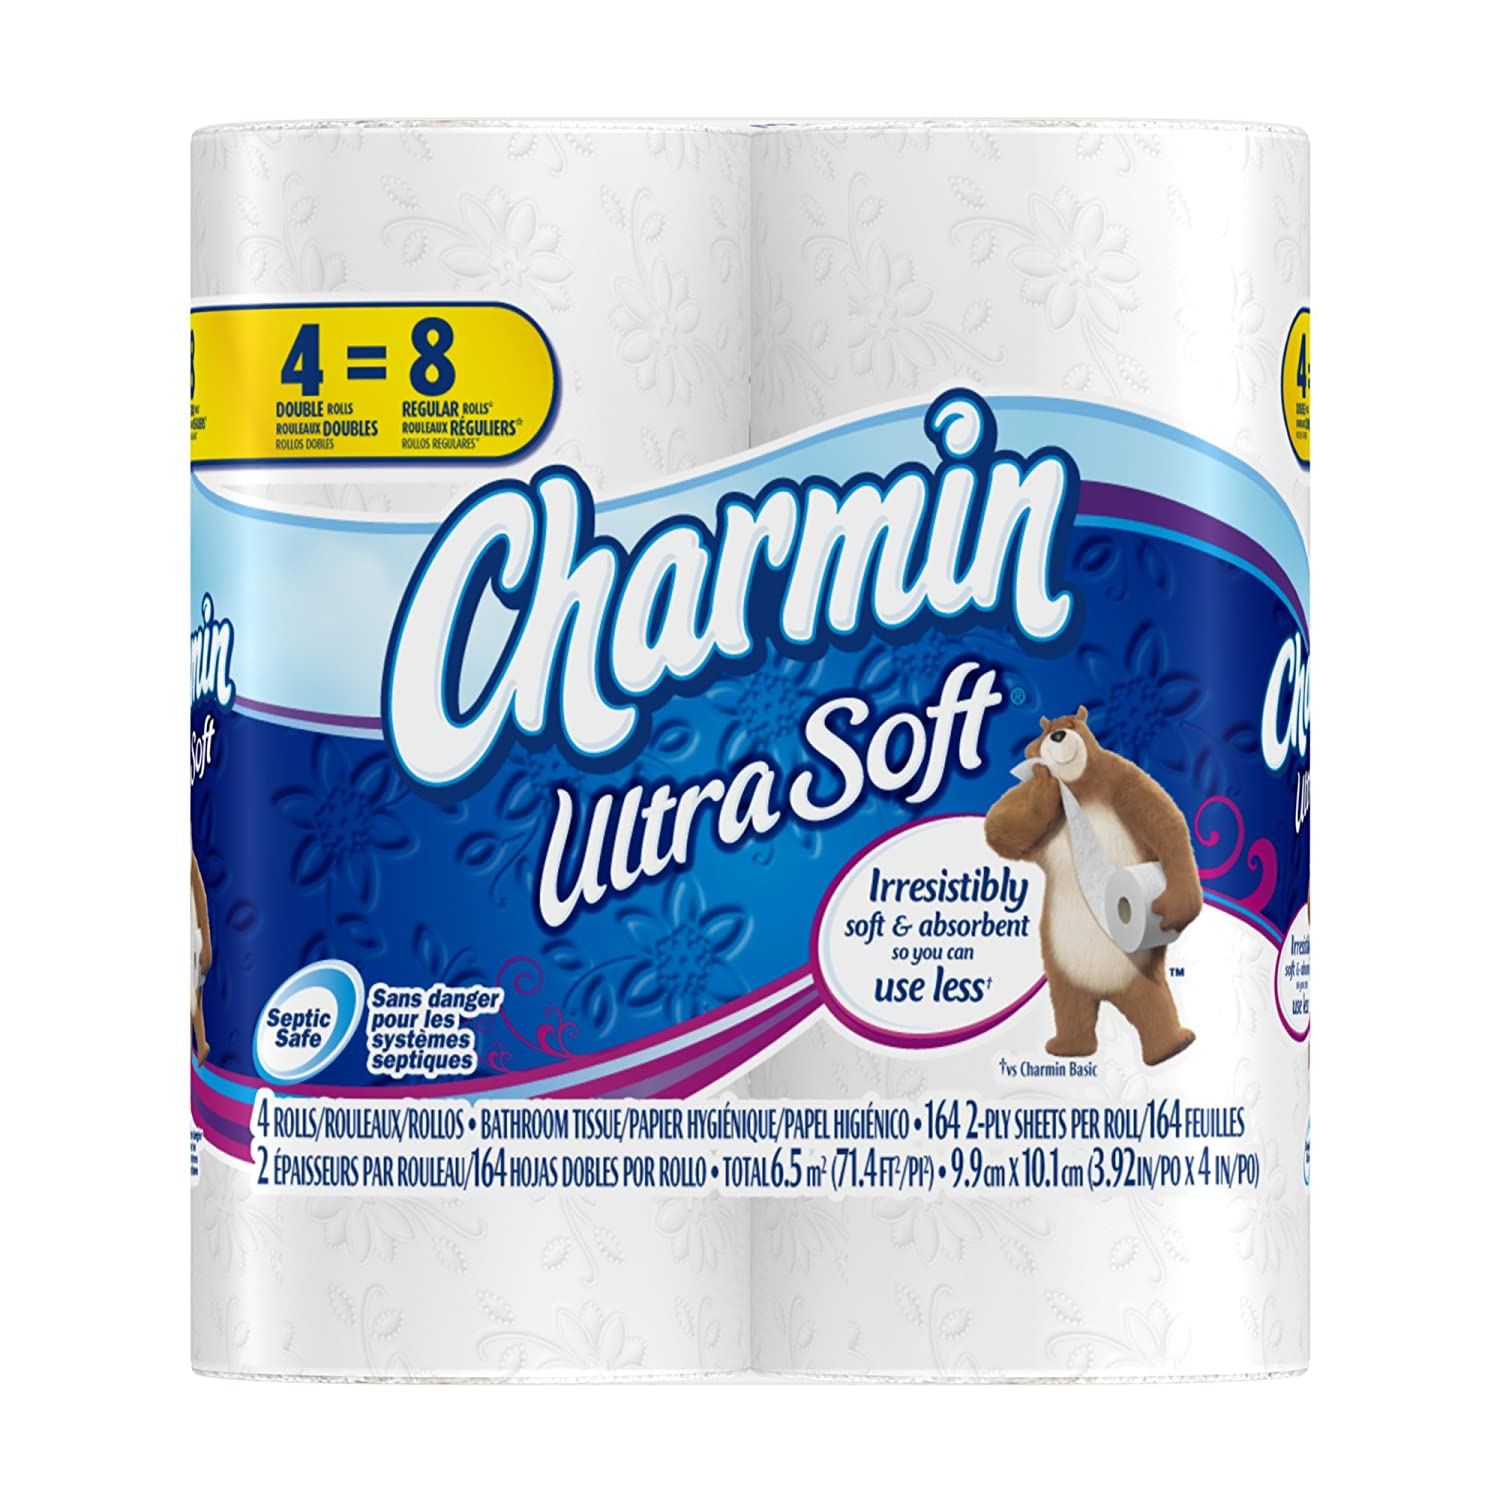 Charmin ultra soft toilet paper 10 packs of 4 double rolls bathroom